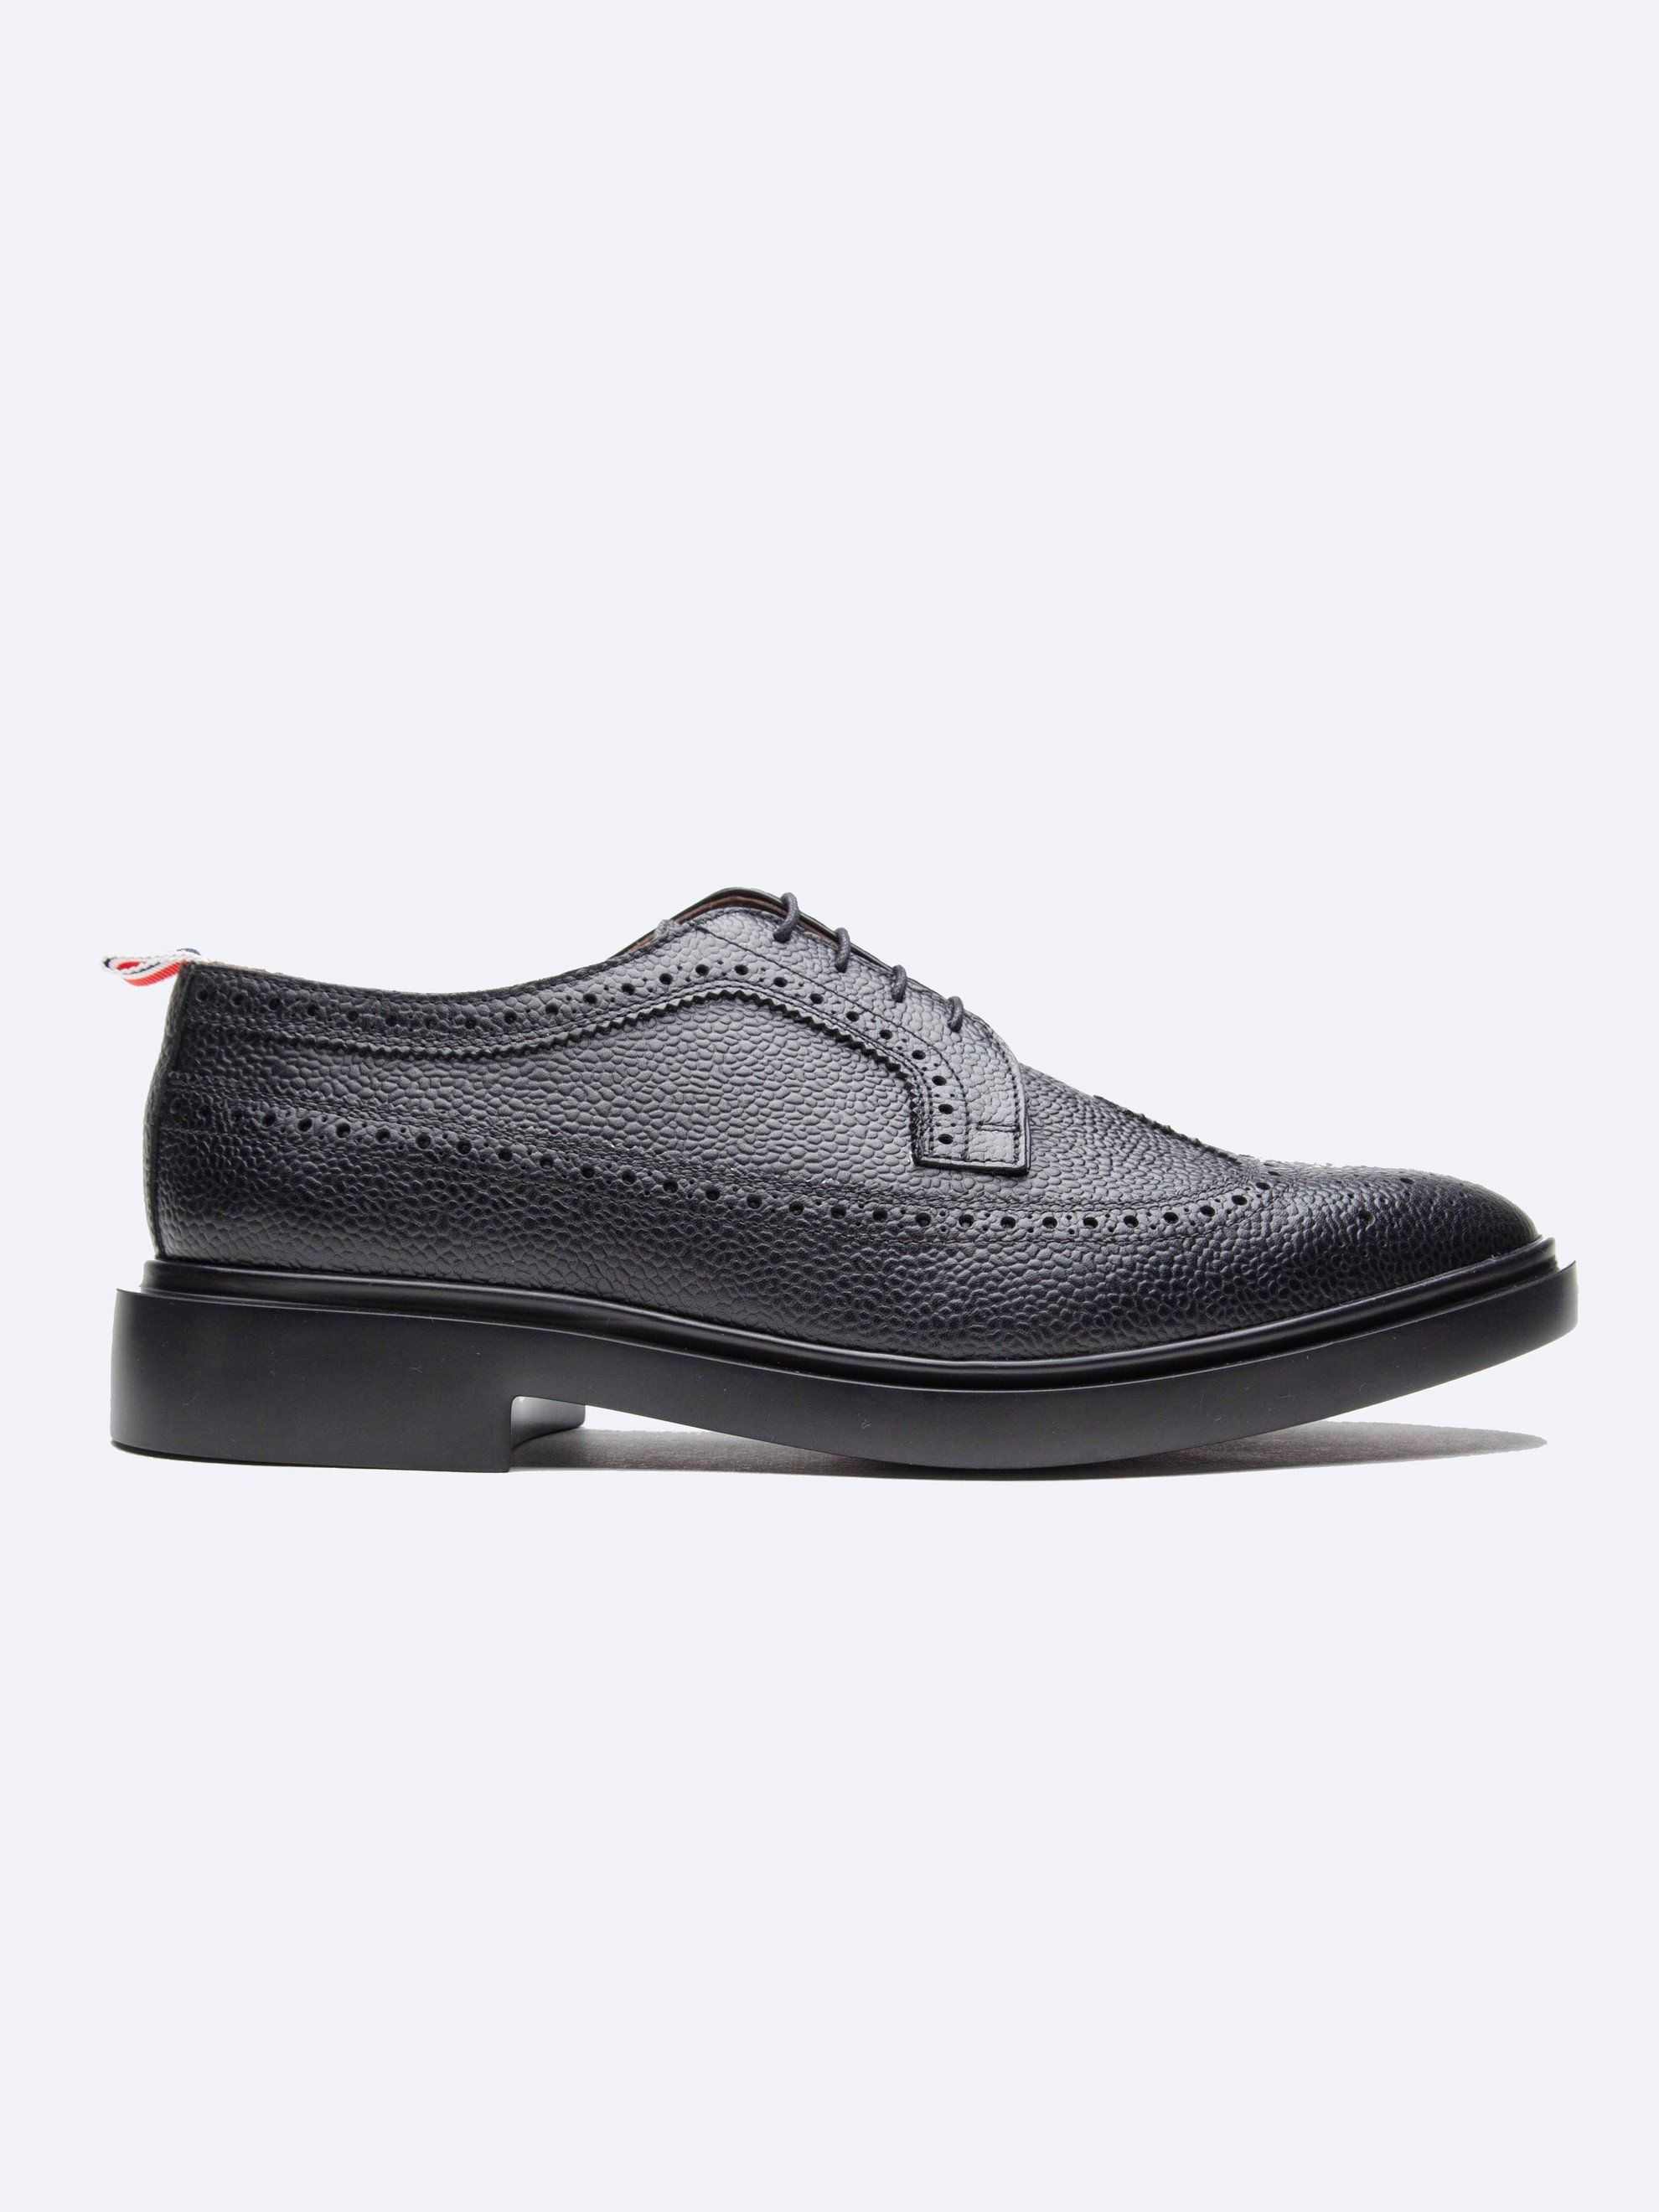 432a28b0e03ccb THOM BROWNE - Classic Long Wing Brogue (Lightweight Rubber Sole/Pebble Grain)  - $690.00